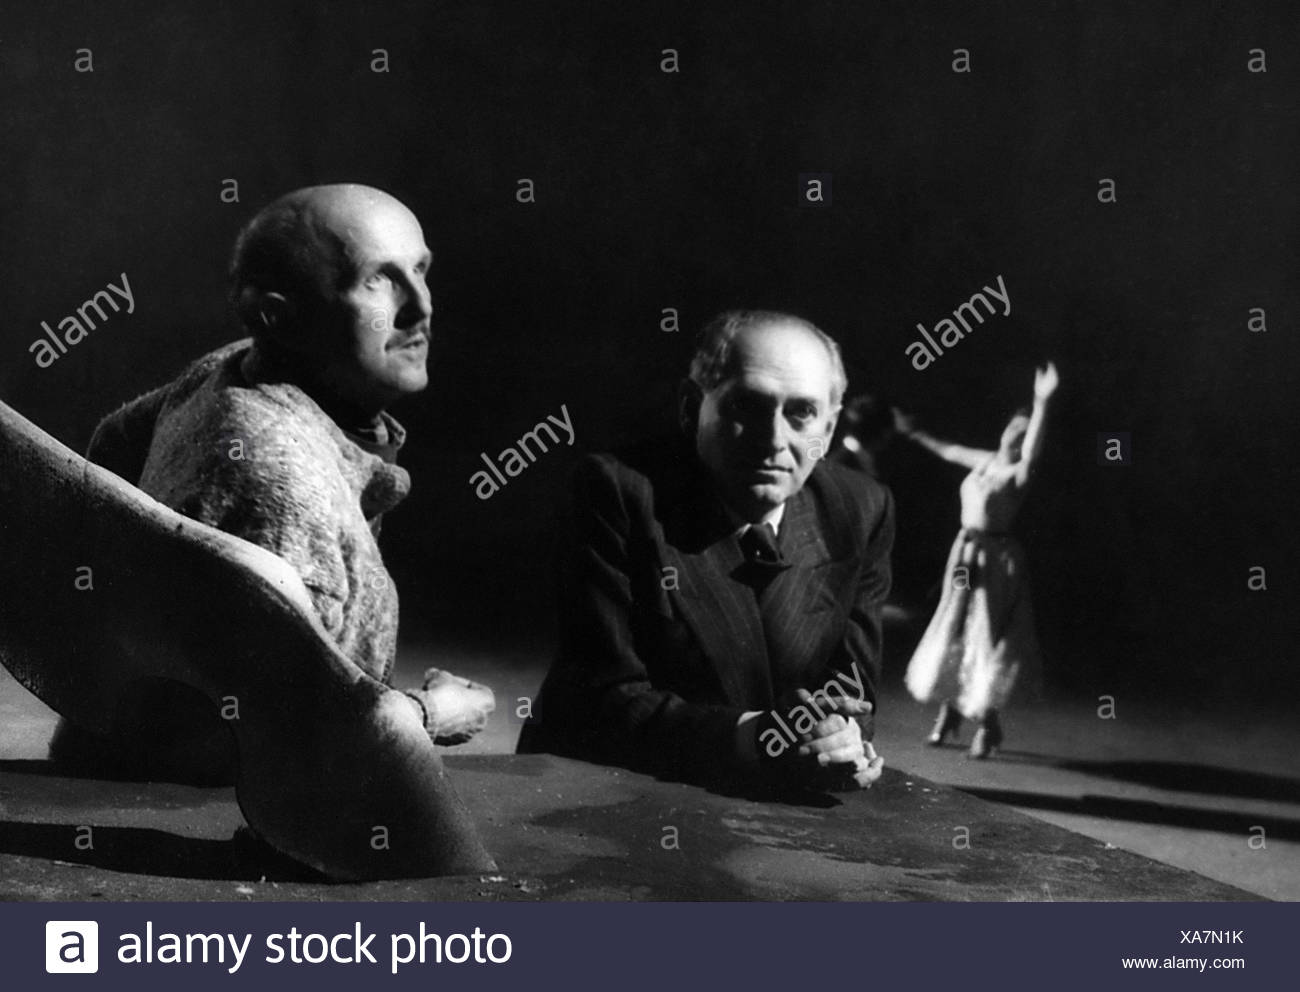 Pressburger, Emeric, 5.12.1902 - 5.2.1988, Hungarian director, with Michael Powell, (1905- 1990), during making of, 1955, 1950s, - Stock Image